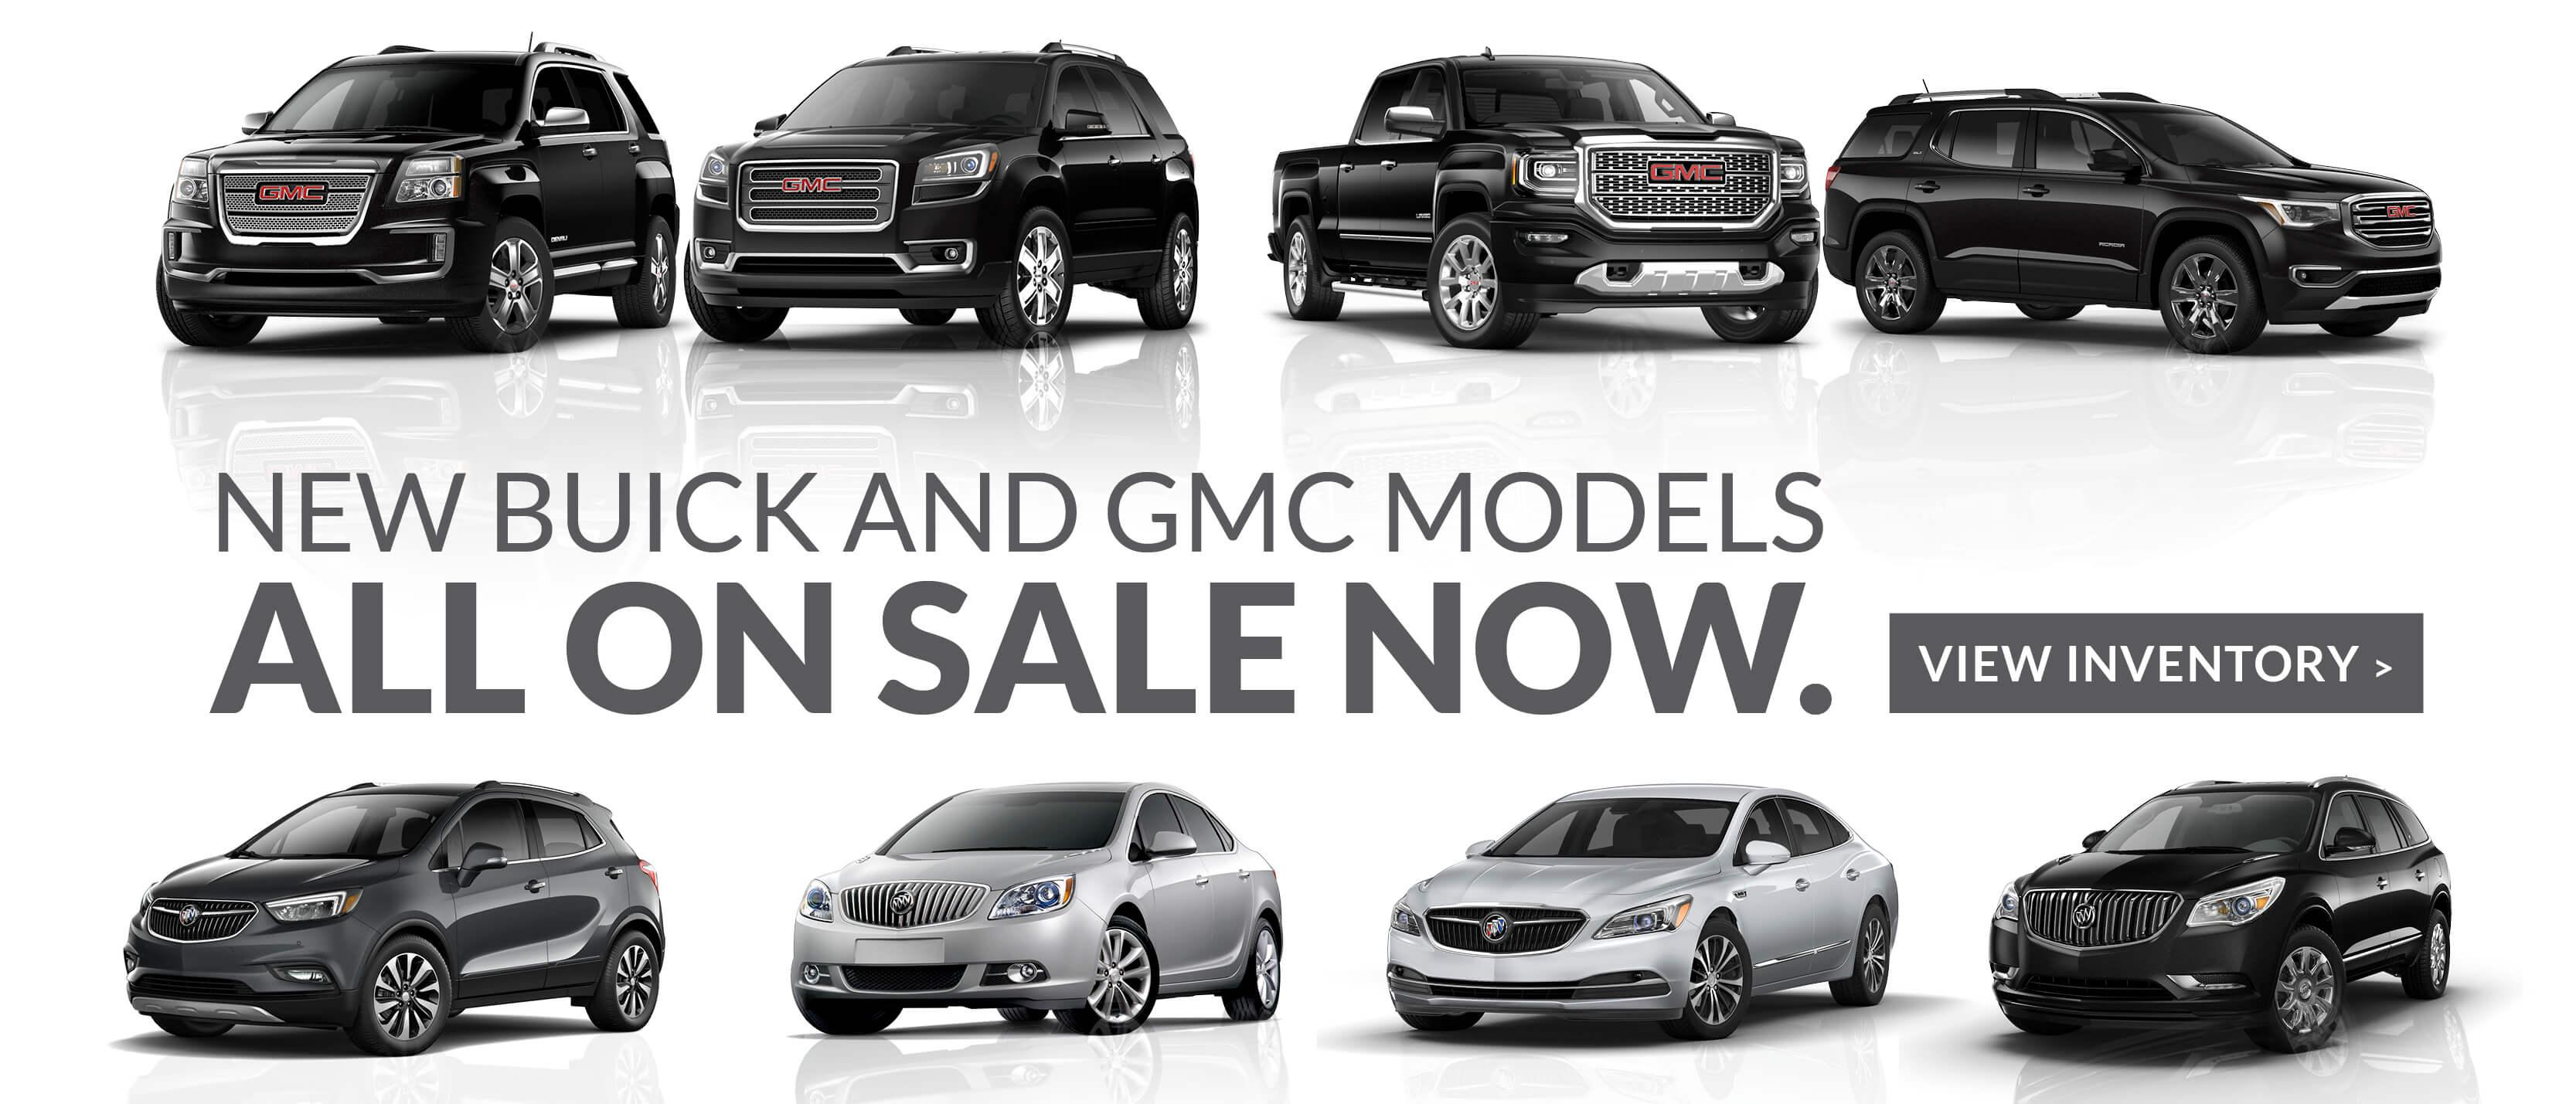 view our inventory of buick and gmc vehicles